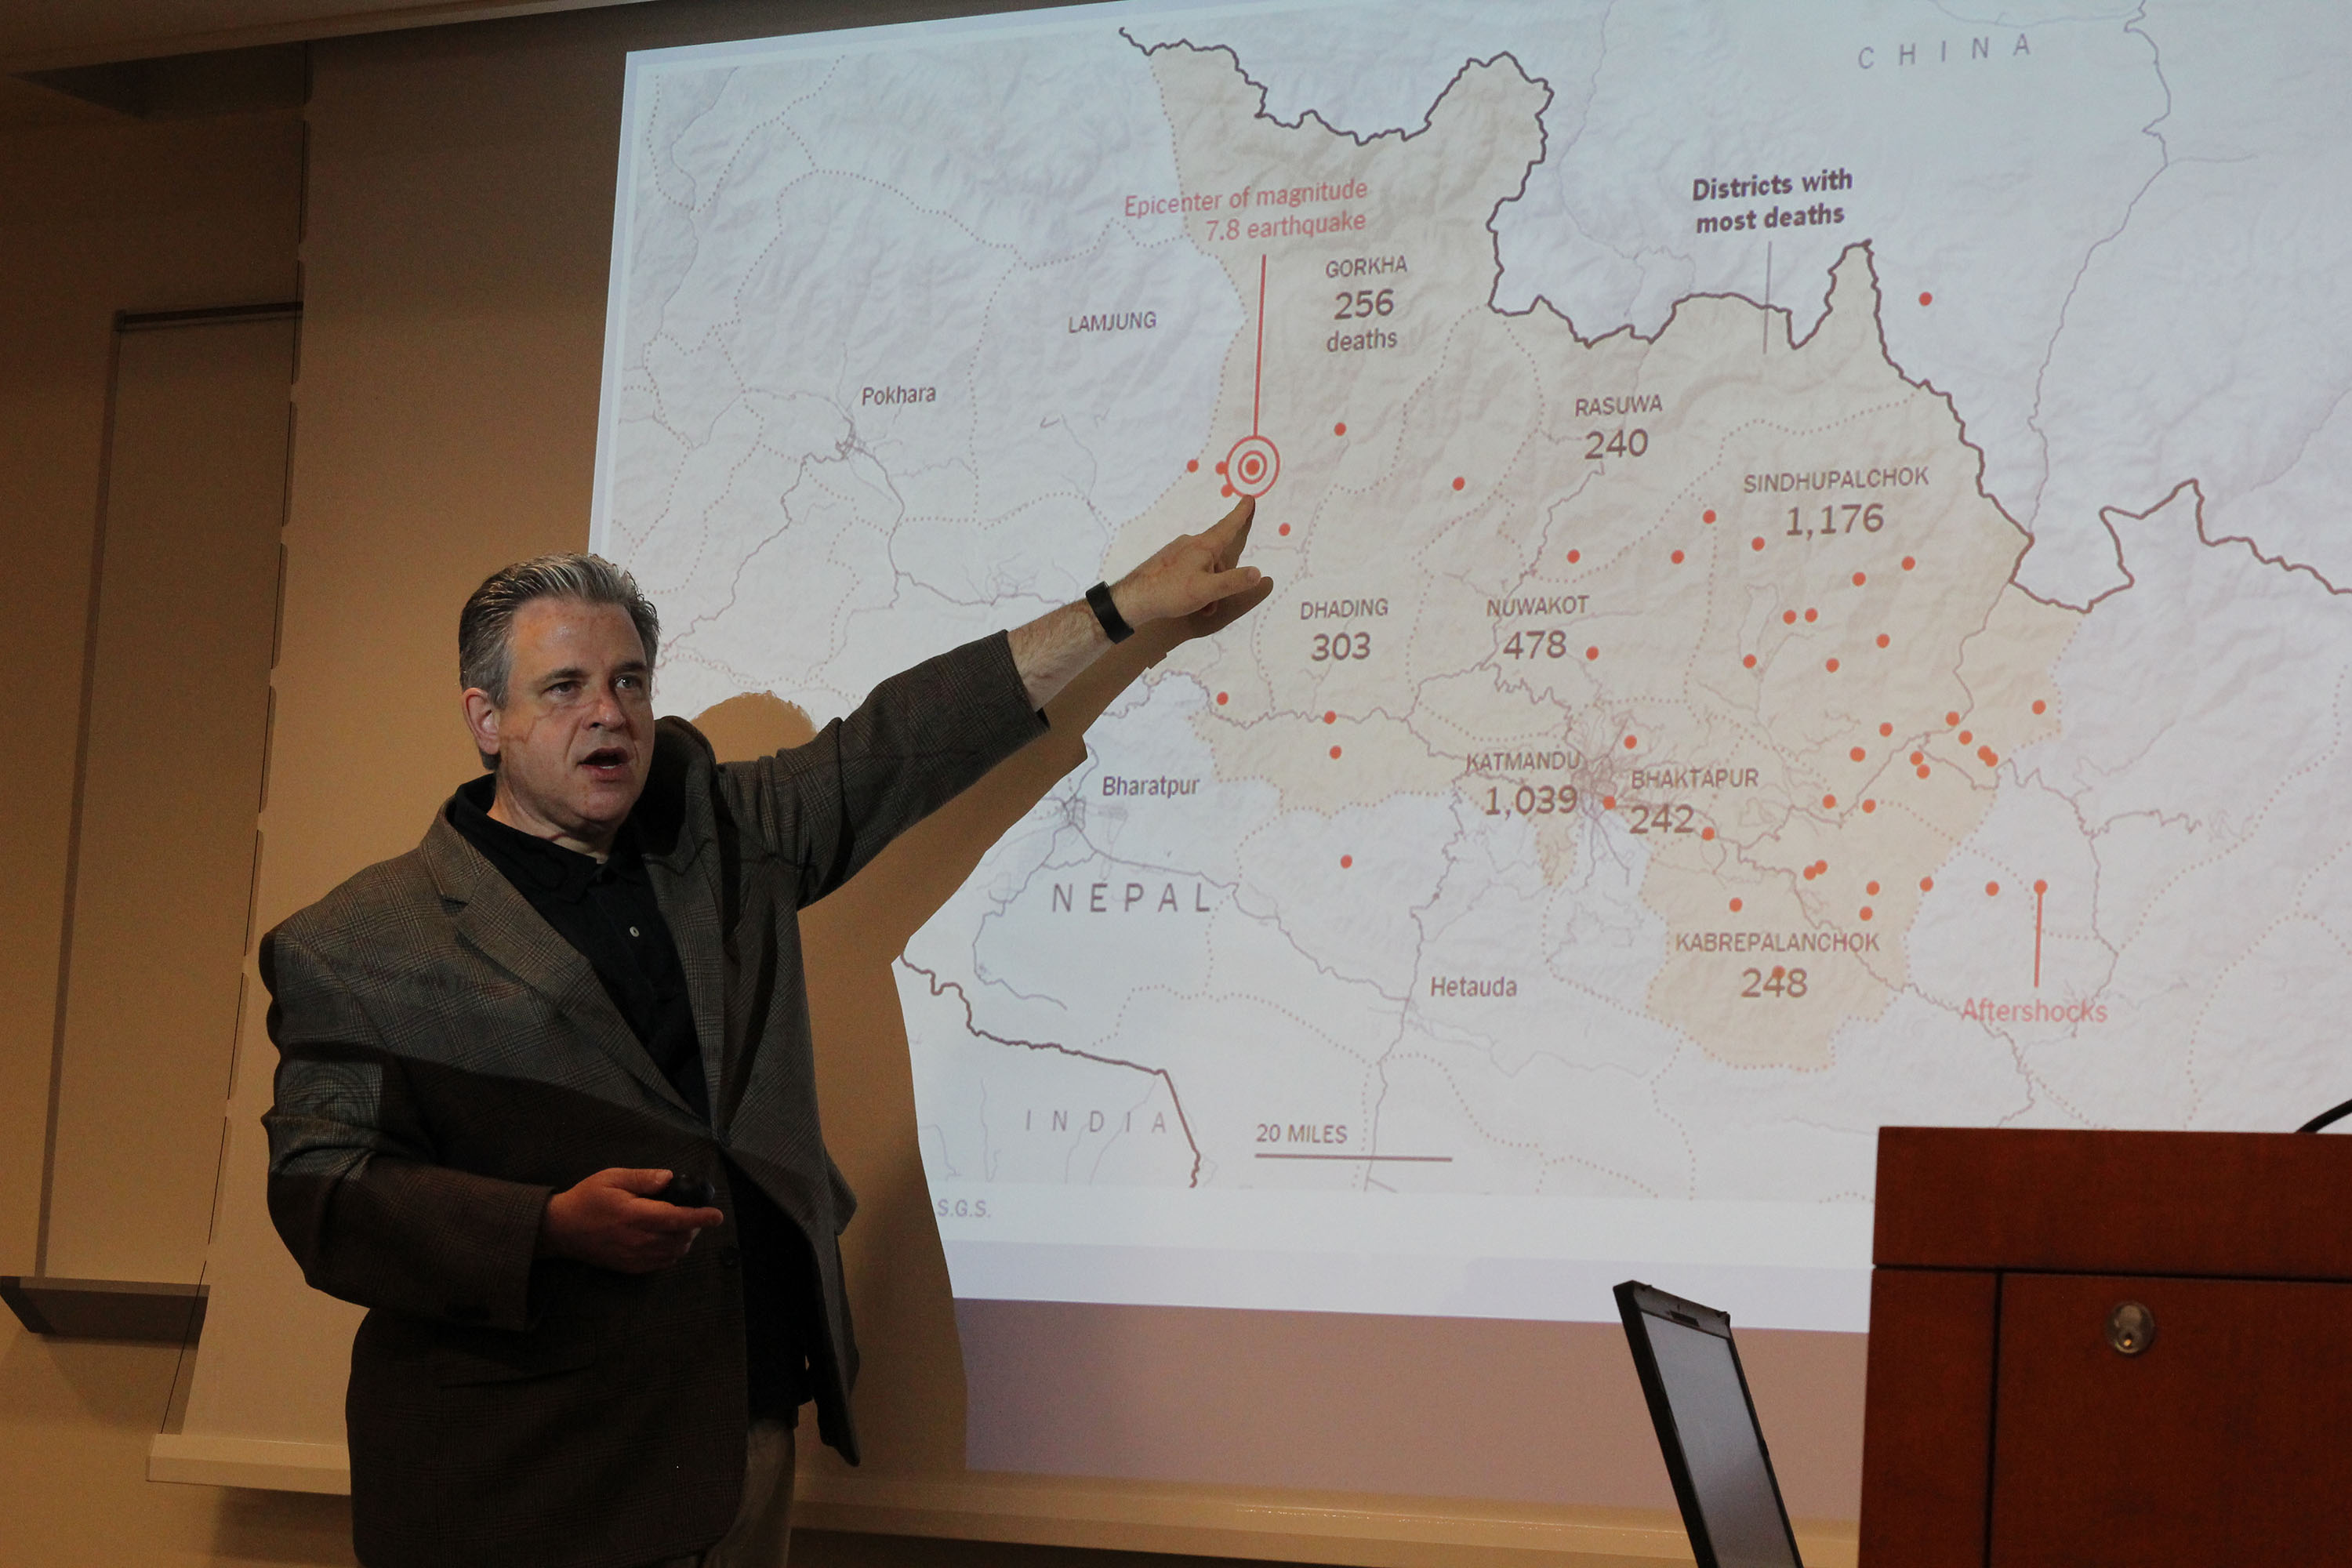 Bill Axinn briefs ISR on Nepal Earthquake and colleagues disaster relief efforts. Image credit:  Michael McIntyre